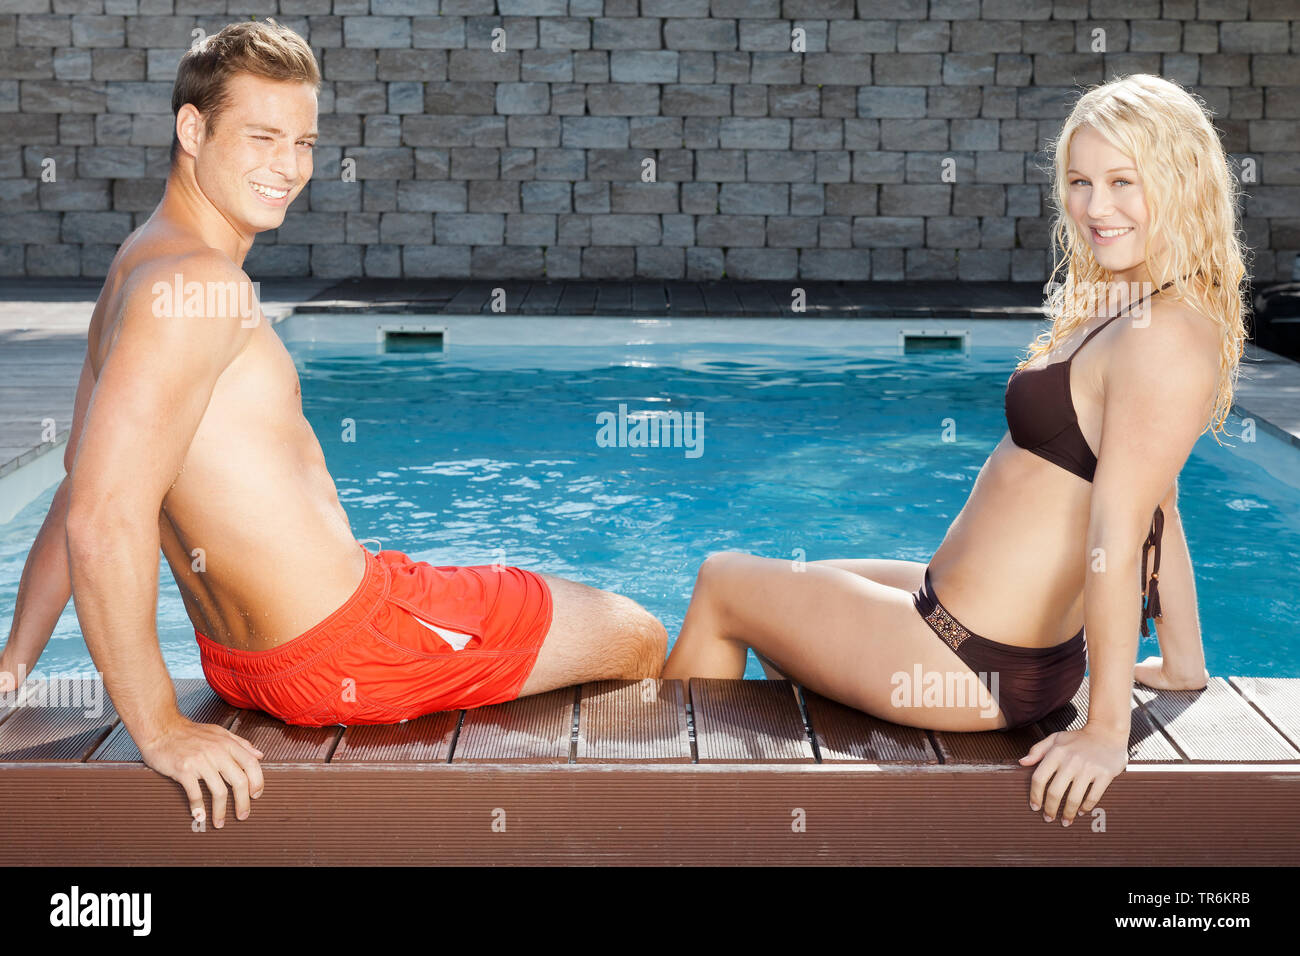 junges Paar entspannt sich am Schwimmbeckenrand, Deutschland | young couple relaxing at a pool, Germany | BLWS486436.jpg [ (c) blickwinkel/McPHOTO/M. - Stock Image